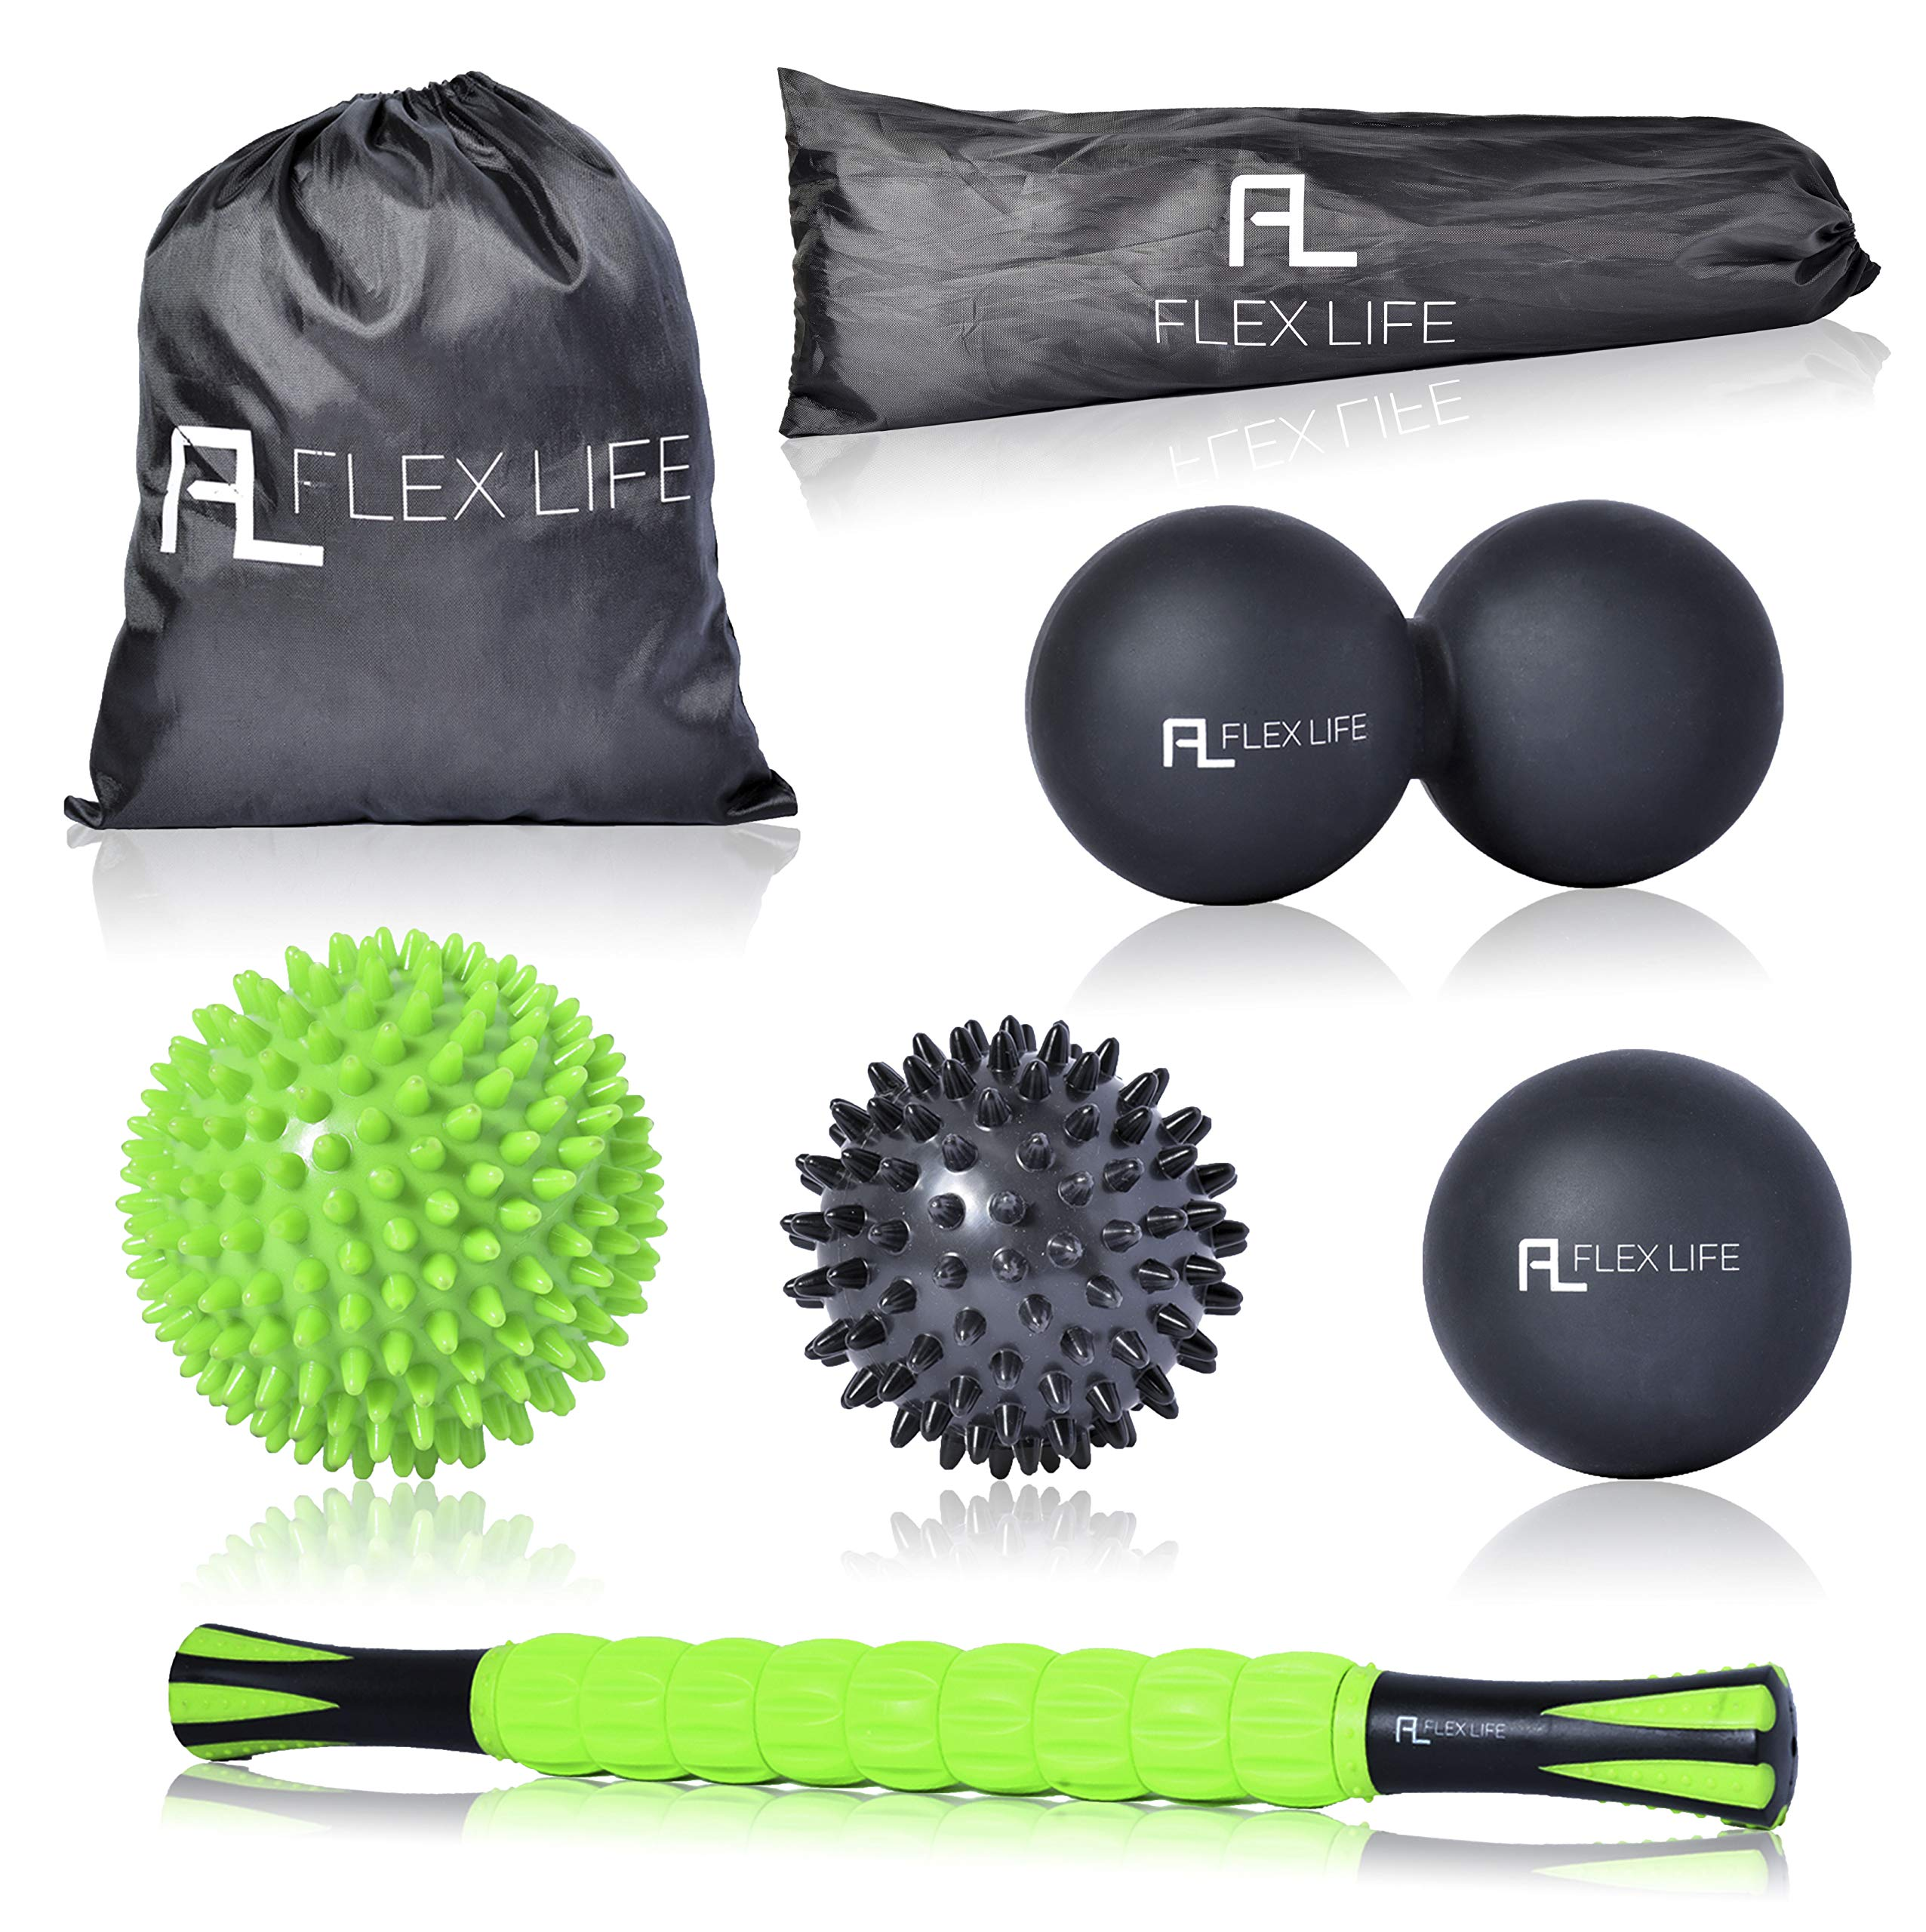 Flex Life Massage Ball Set & Muscle Roller Stick Massager - 2 Spiky Ball, 1 Lacrosse Ball, 1 Peanut Ball, (1) 18'' Roller Stick. Great Rollers For Plantar Fasciitis, Mobility, Recovery, Soreness by Flex Life